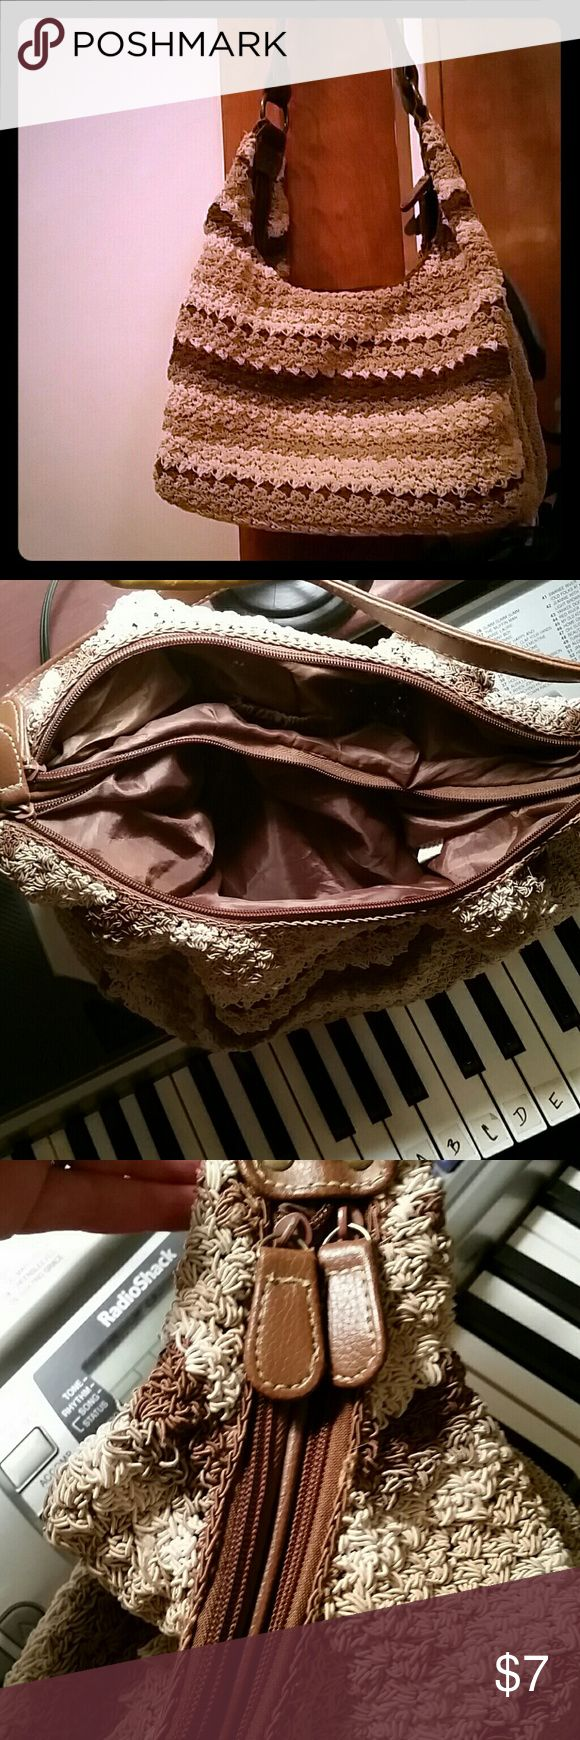 Spacious and Versatile Shoulder Bag No brand, brown, tan, and cream purse.  Double zipper with compartments on each side and other small pockets.  Neutral color, should go well with lots of outfits.  There are a few loose strings, as shown in the last pic, but barely noticeable. No Brand Bags Shoulder Bags